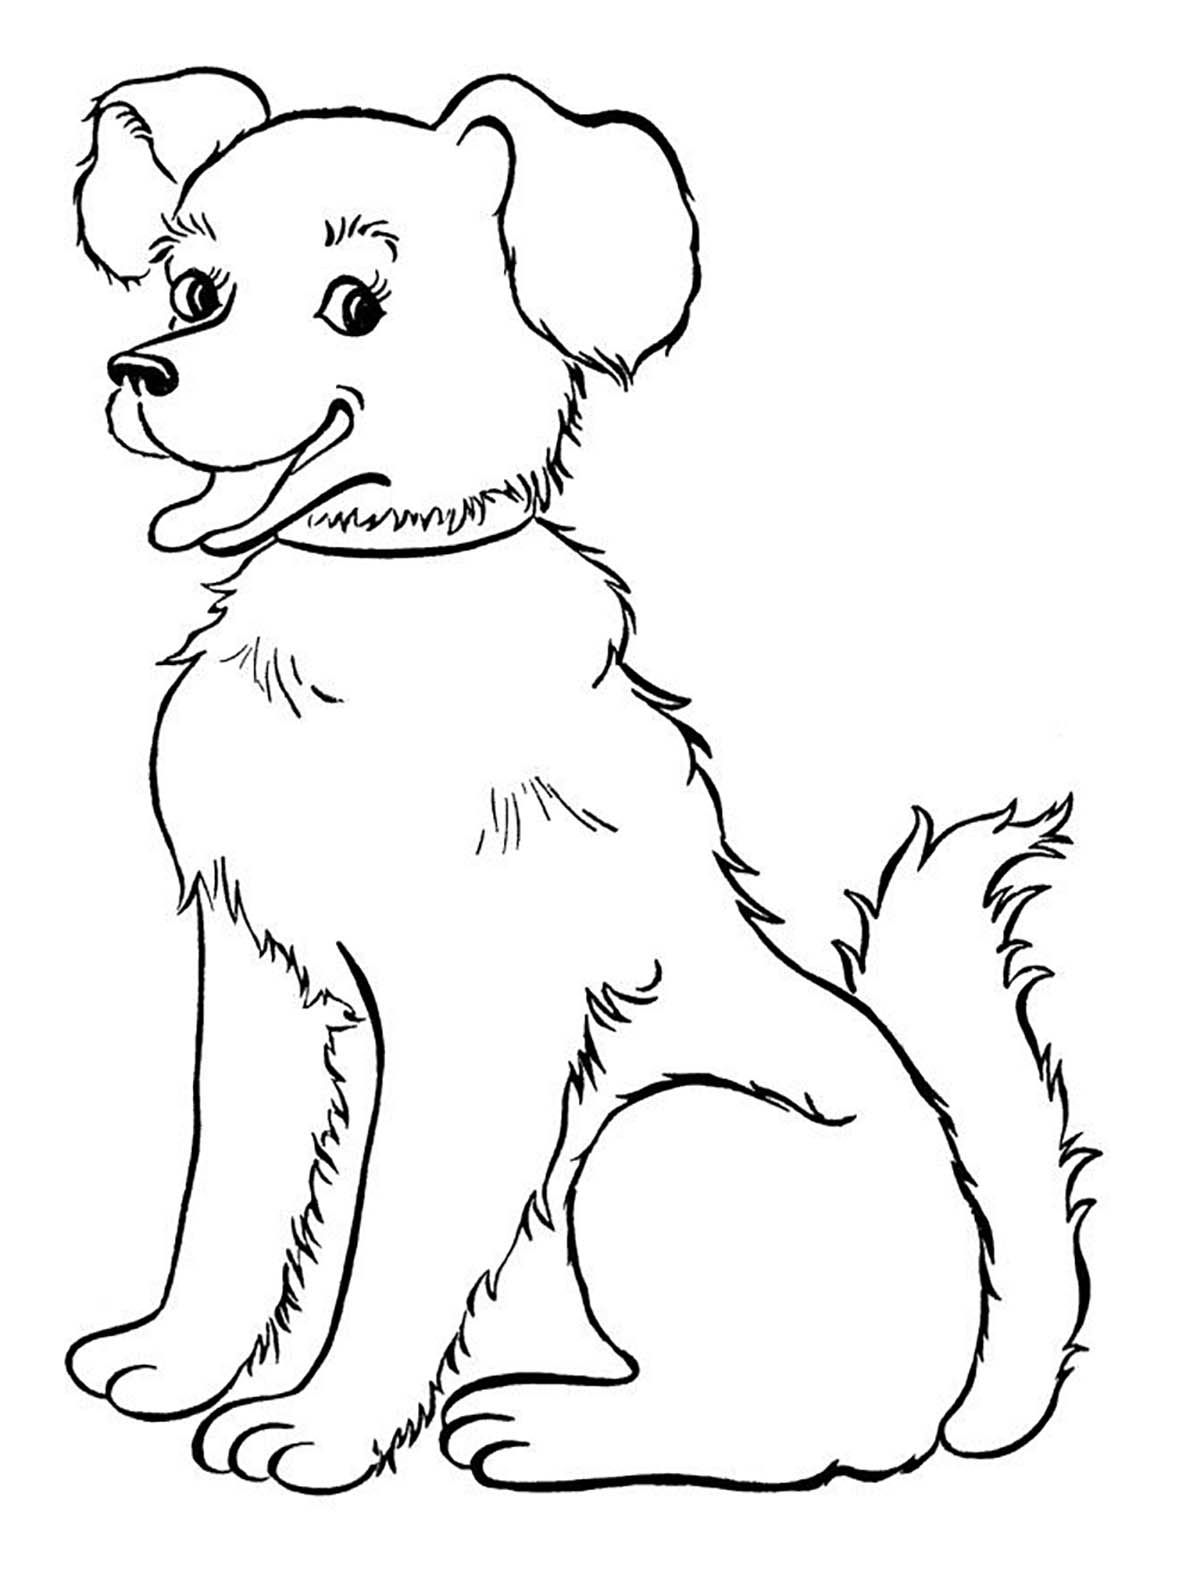 Printable Dog Coloring Page To Print And Color For Free Smiling Dog From The Gallery Dogs Dog Pictures To Color Puppy Coloring Pages Dog Coloring Page